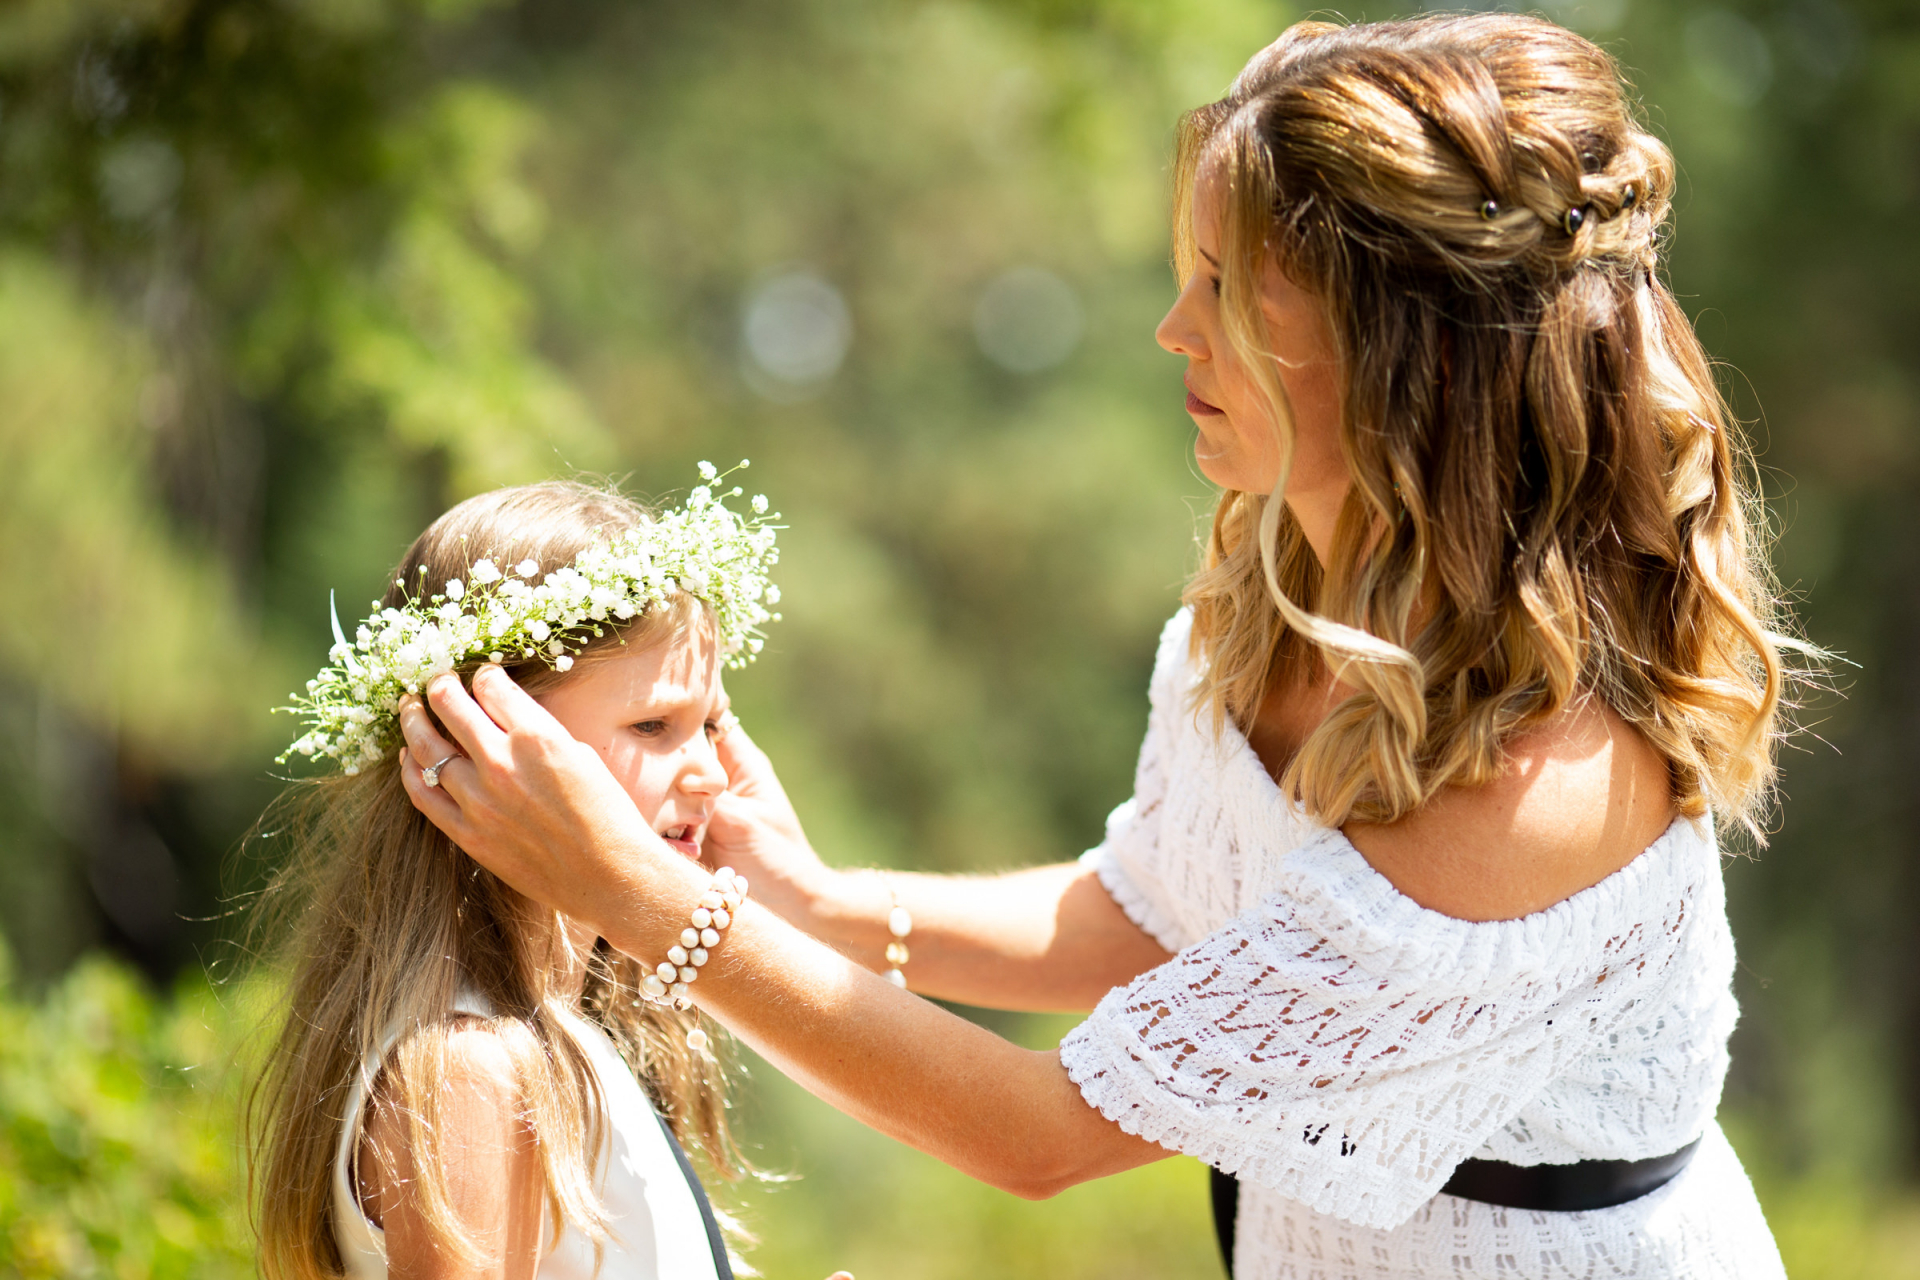 Skylandia Beach Park Wedding Images from Tahoe City   The flower girl gets her flower crown or wreath fixed on her head by the bride-to-be